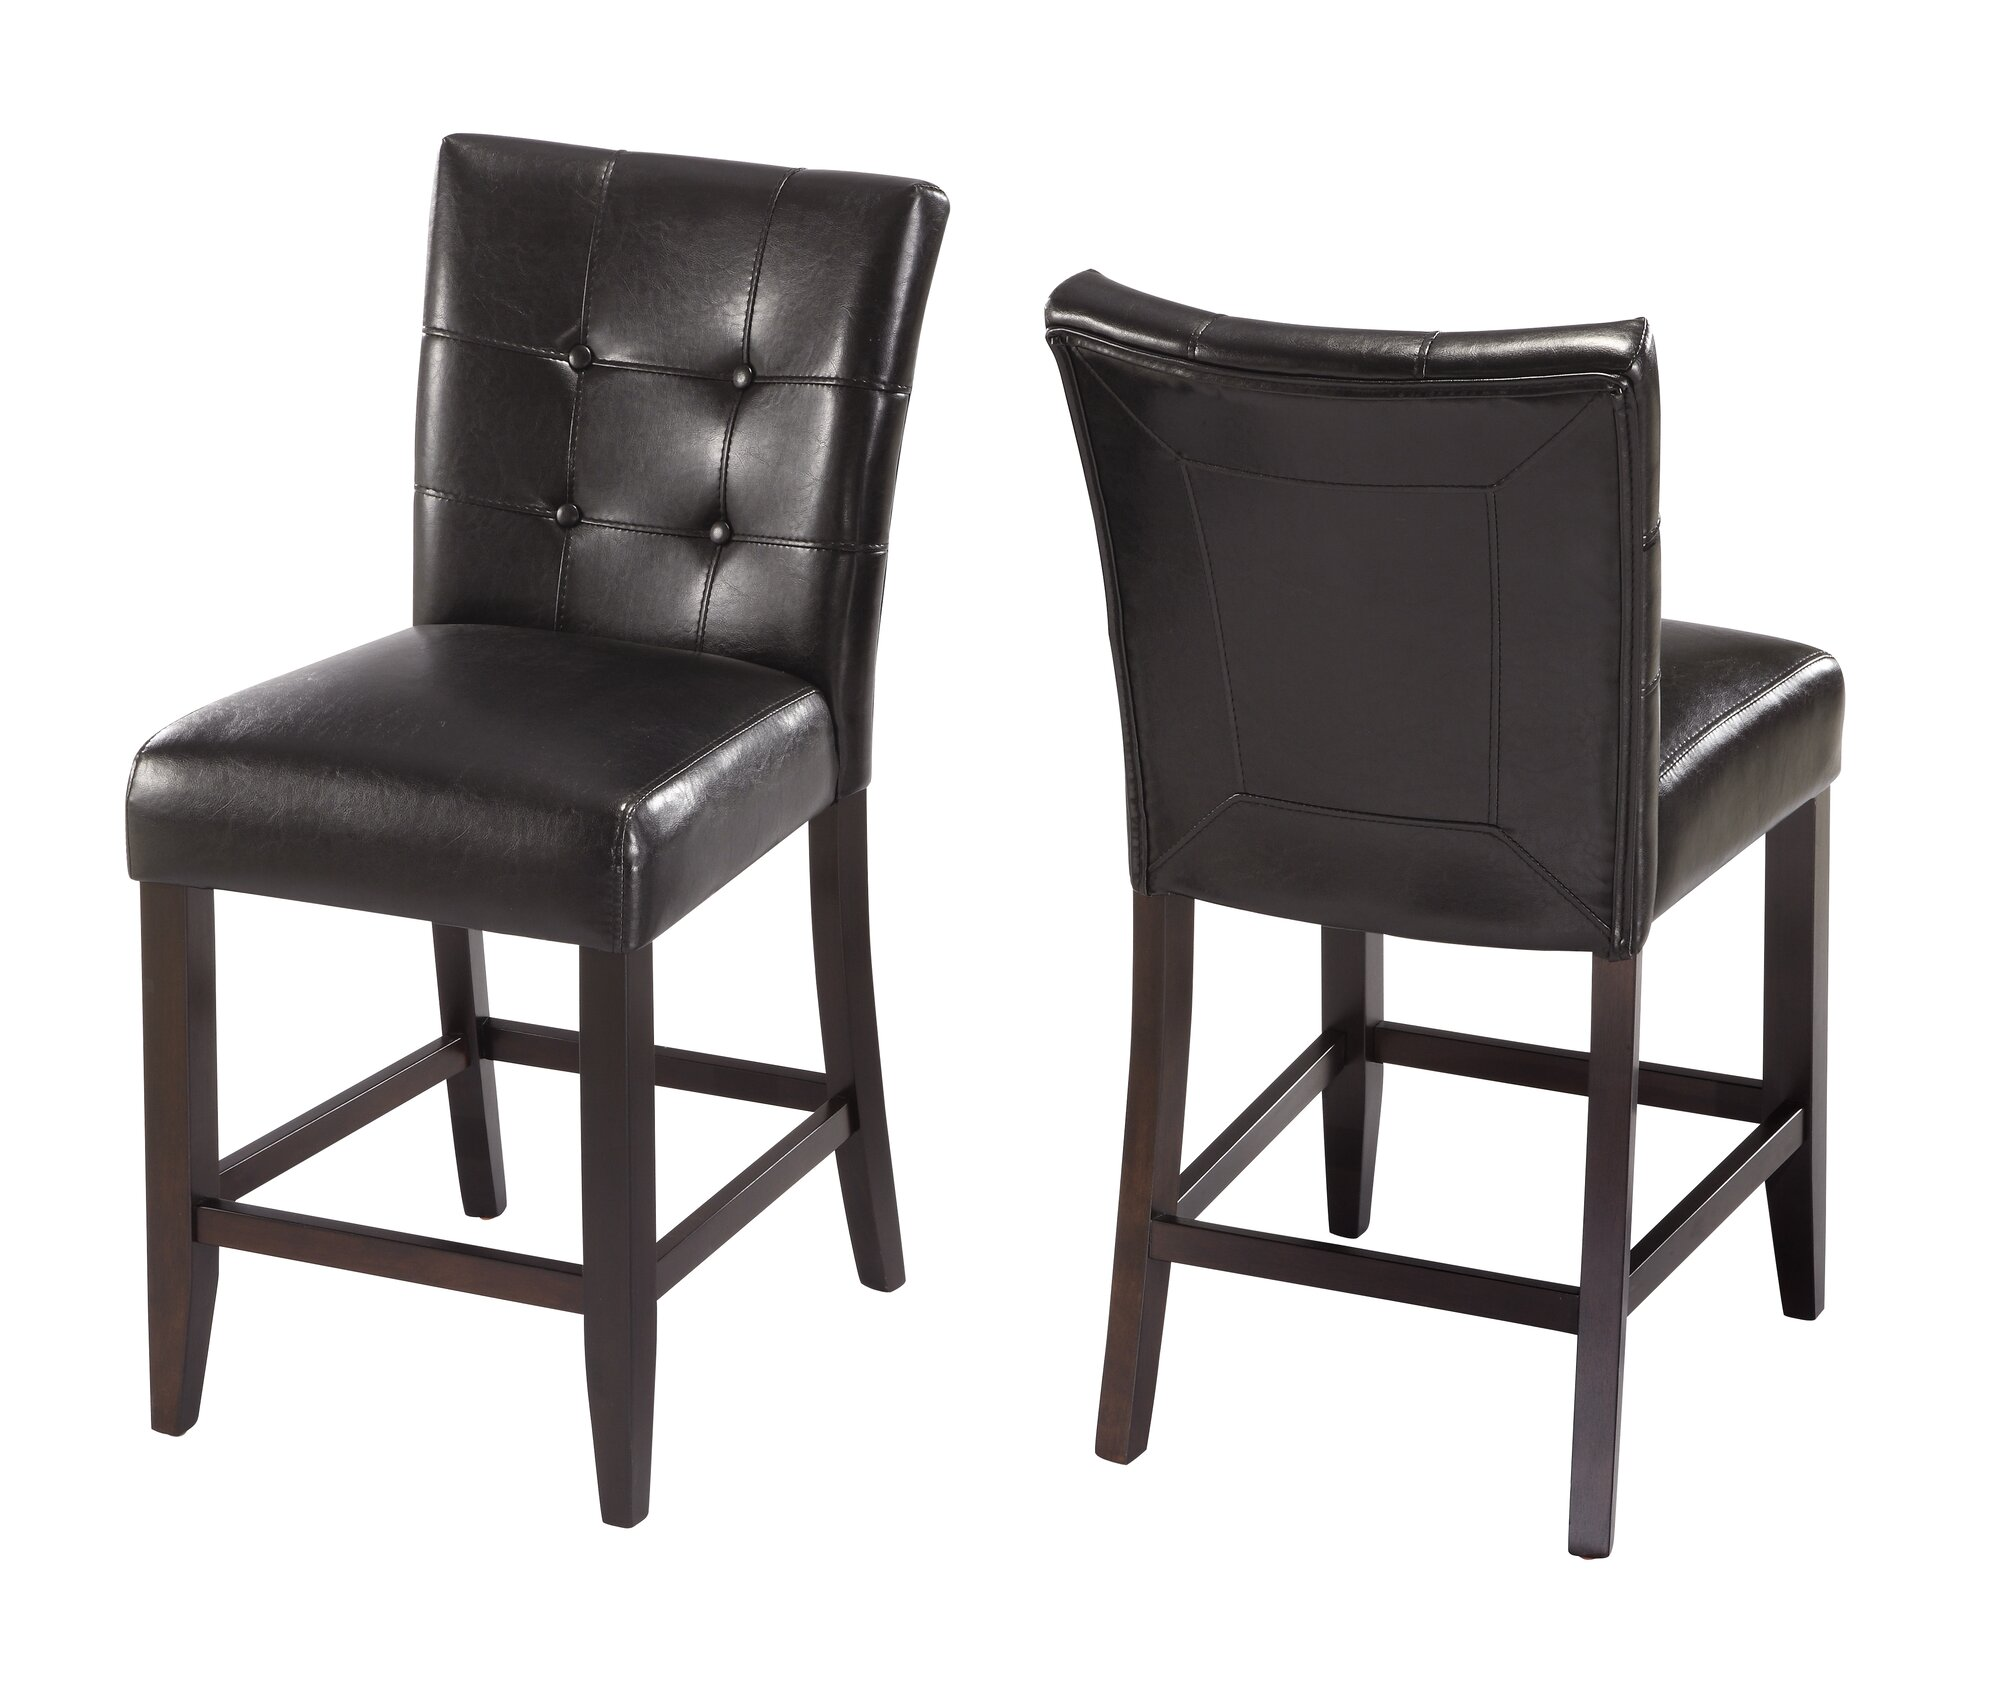 details about counter height 24 stools black set of 2 dining chairs